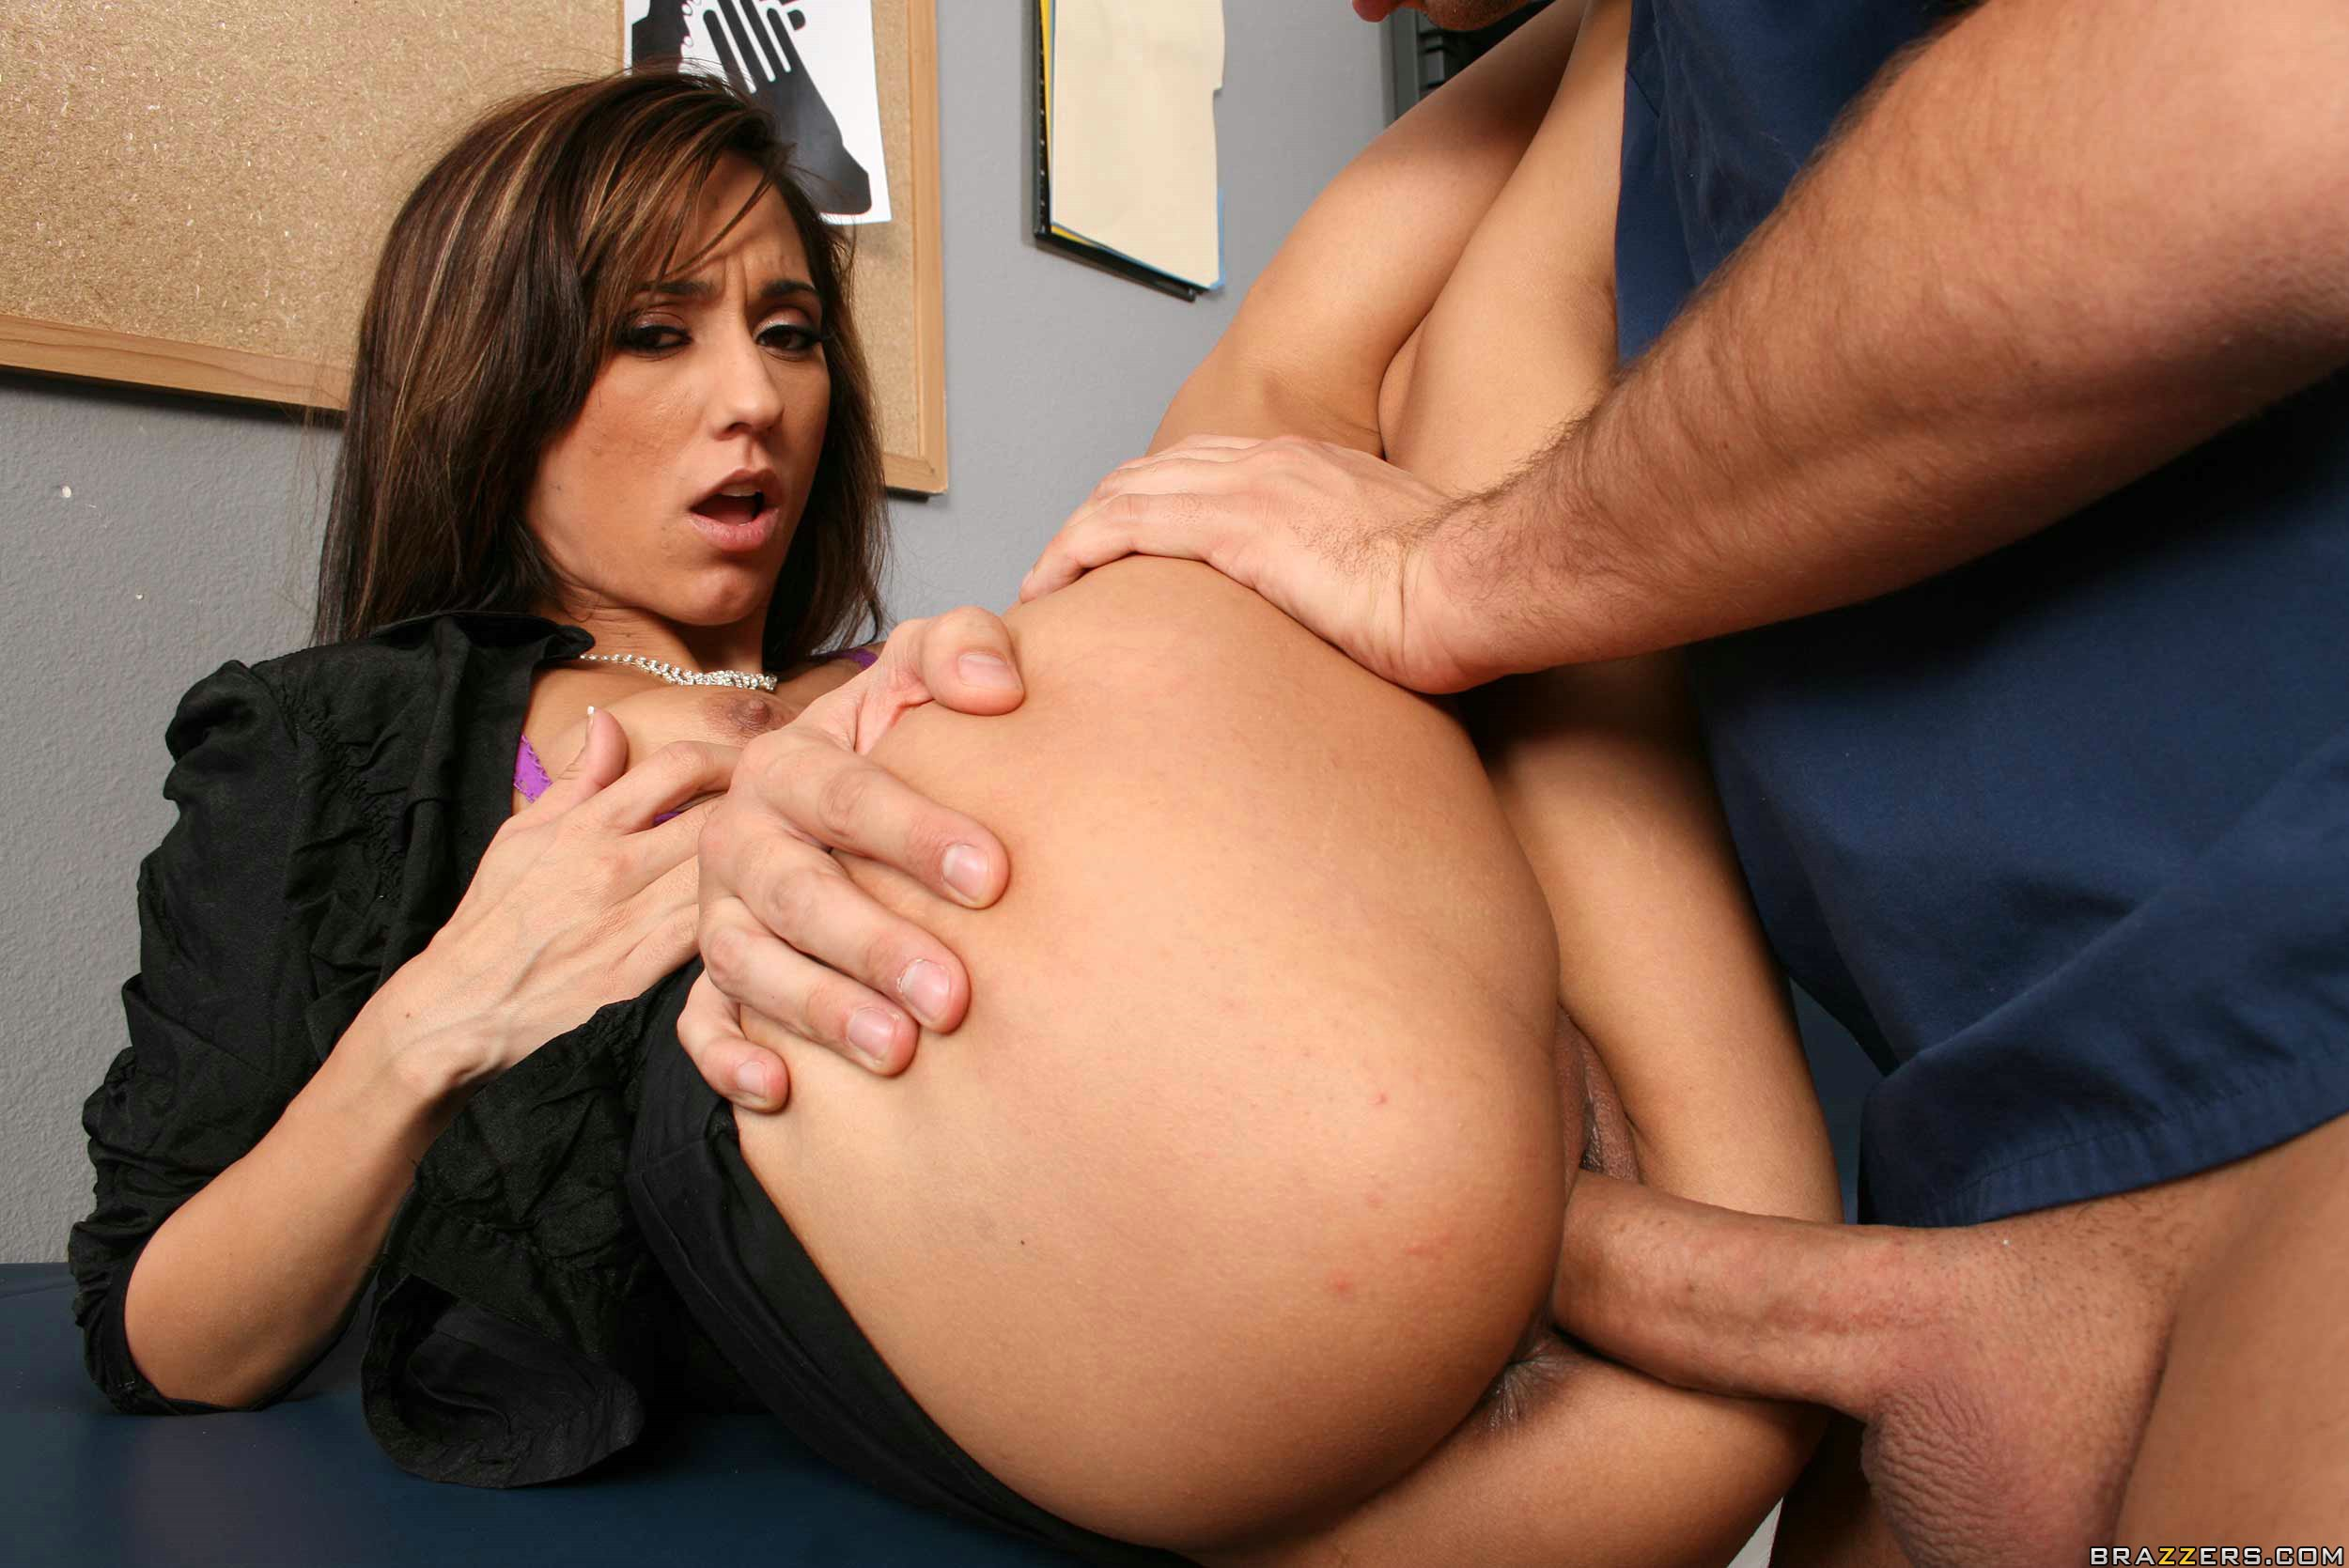 Sexy Hardcore Sex In The Office